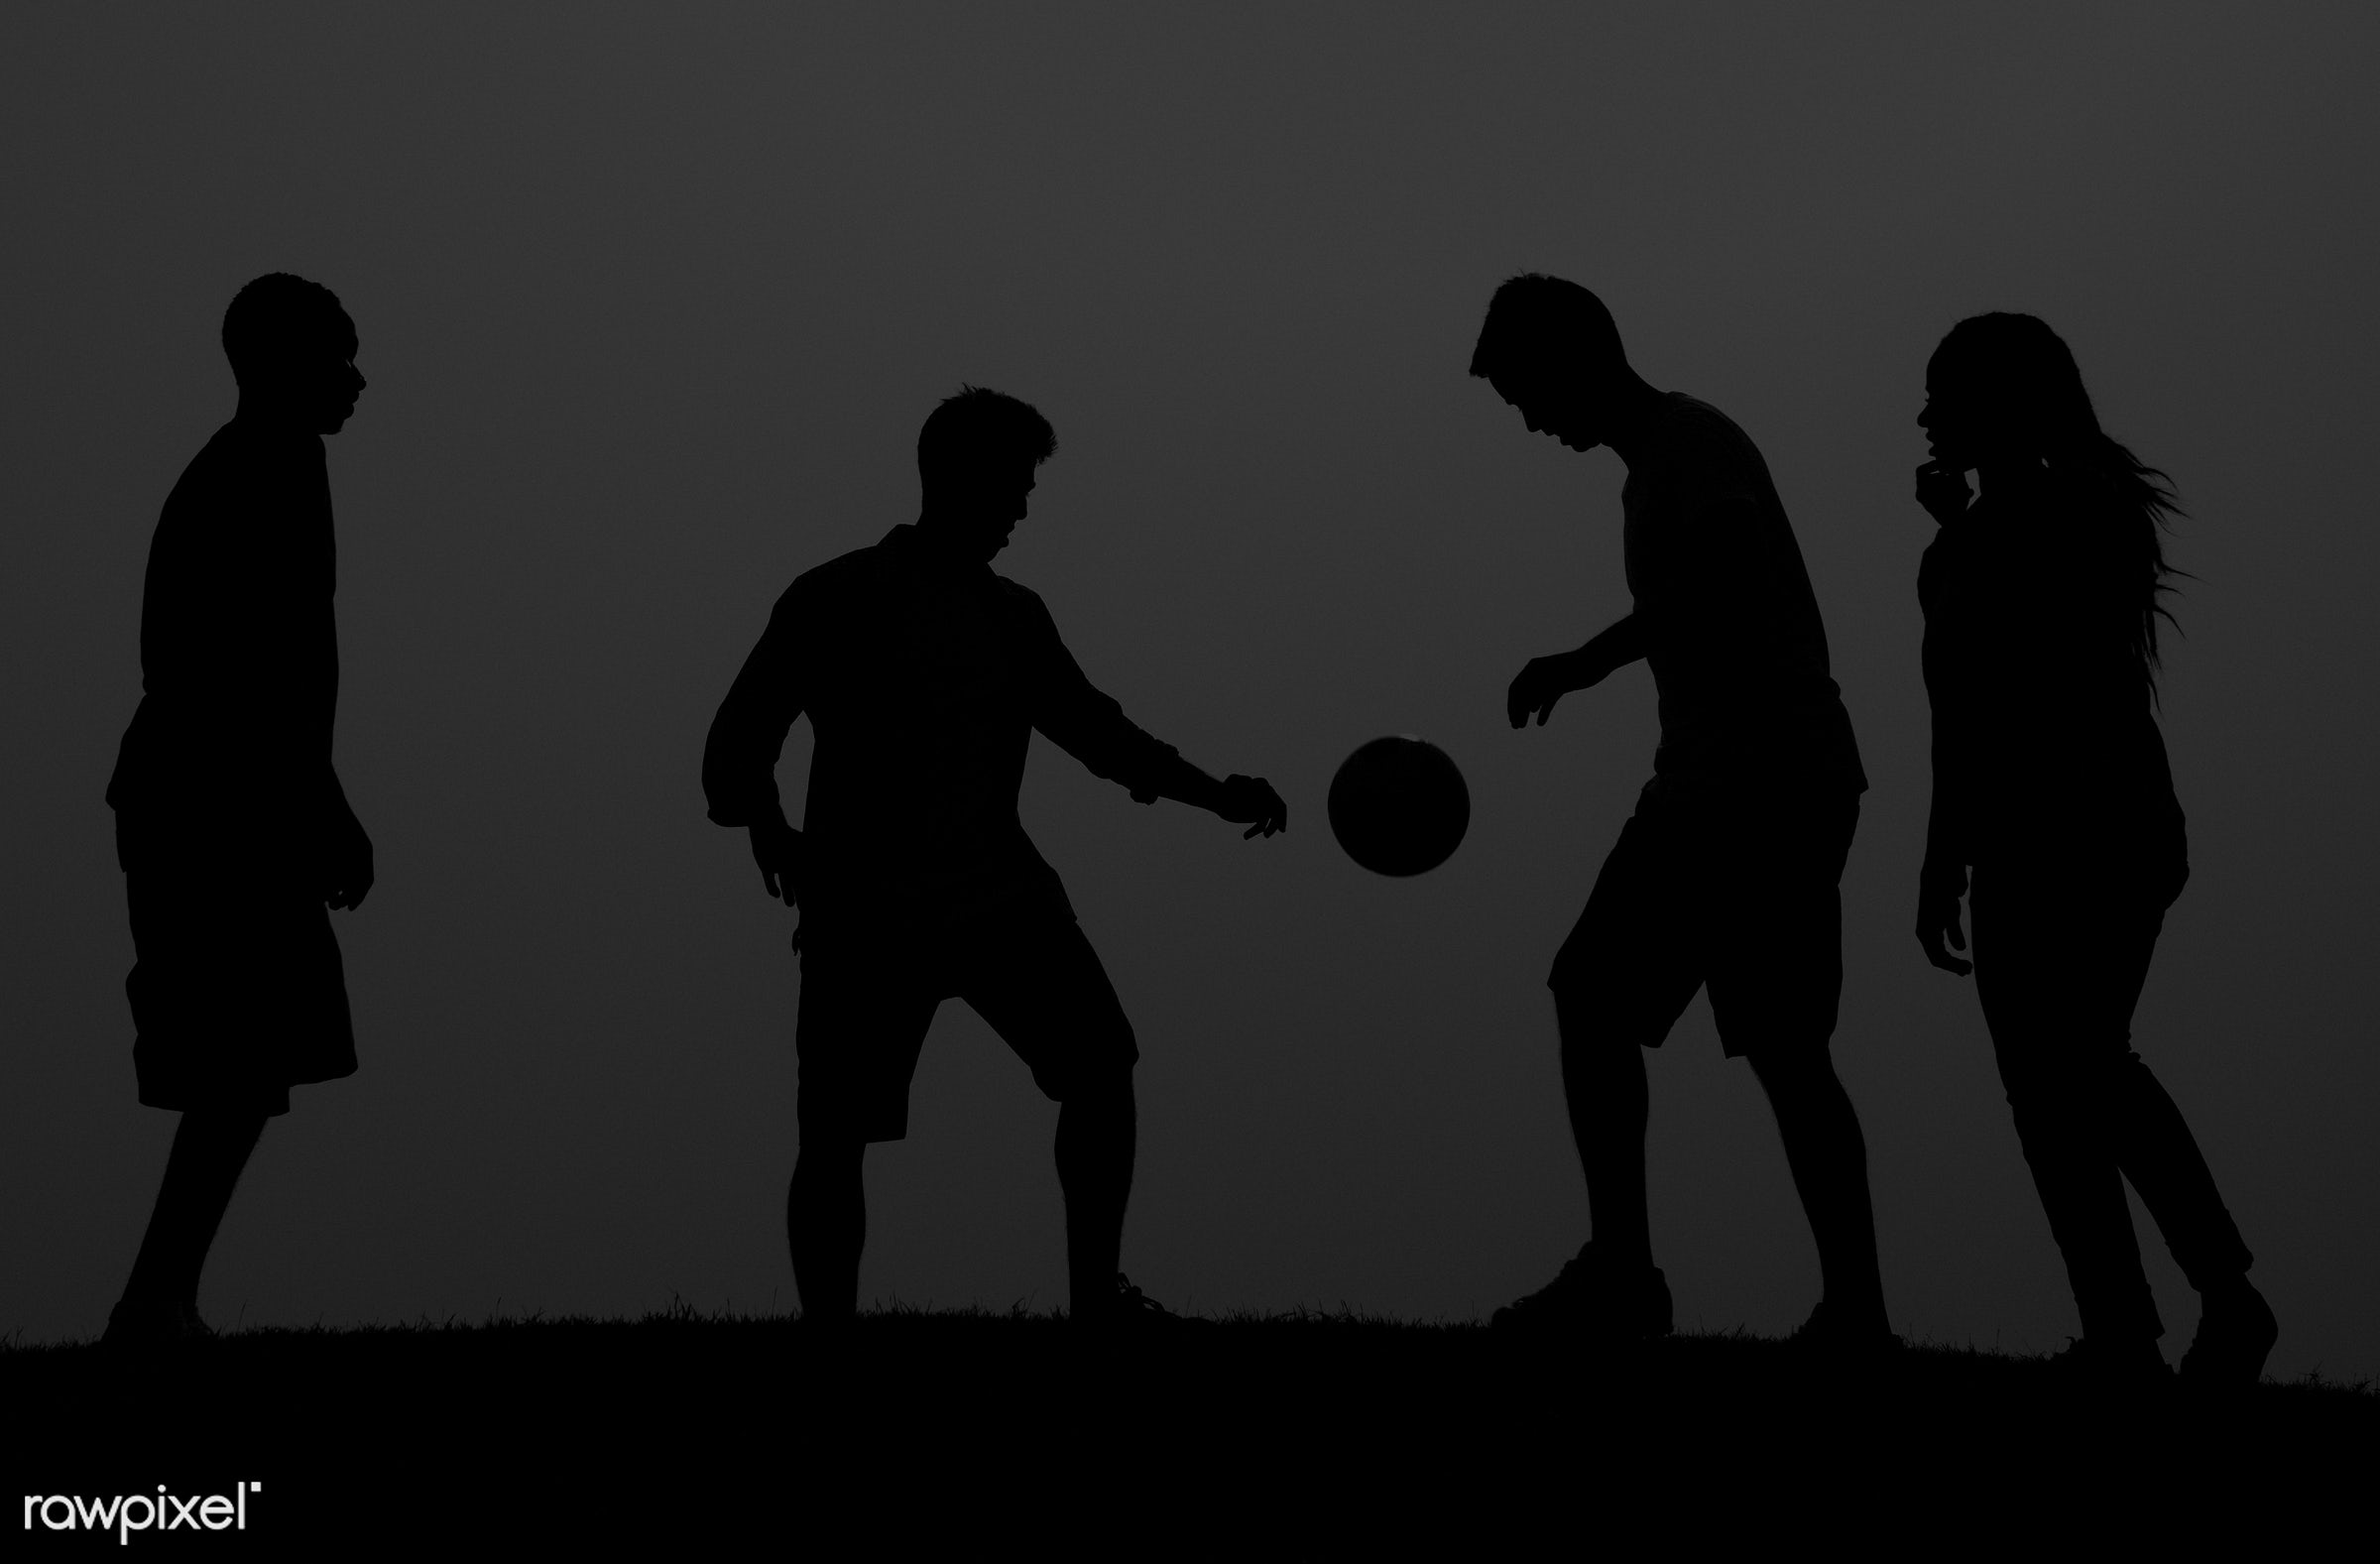 action, active, ball, bonding, boys, dusk, evening, field, football, friends, friendship, fun, game, girl, kicking, leisure...